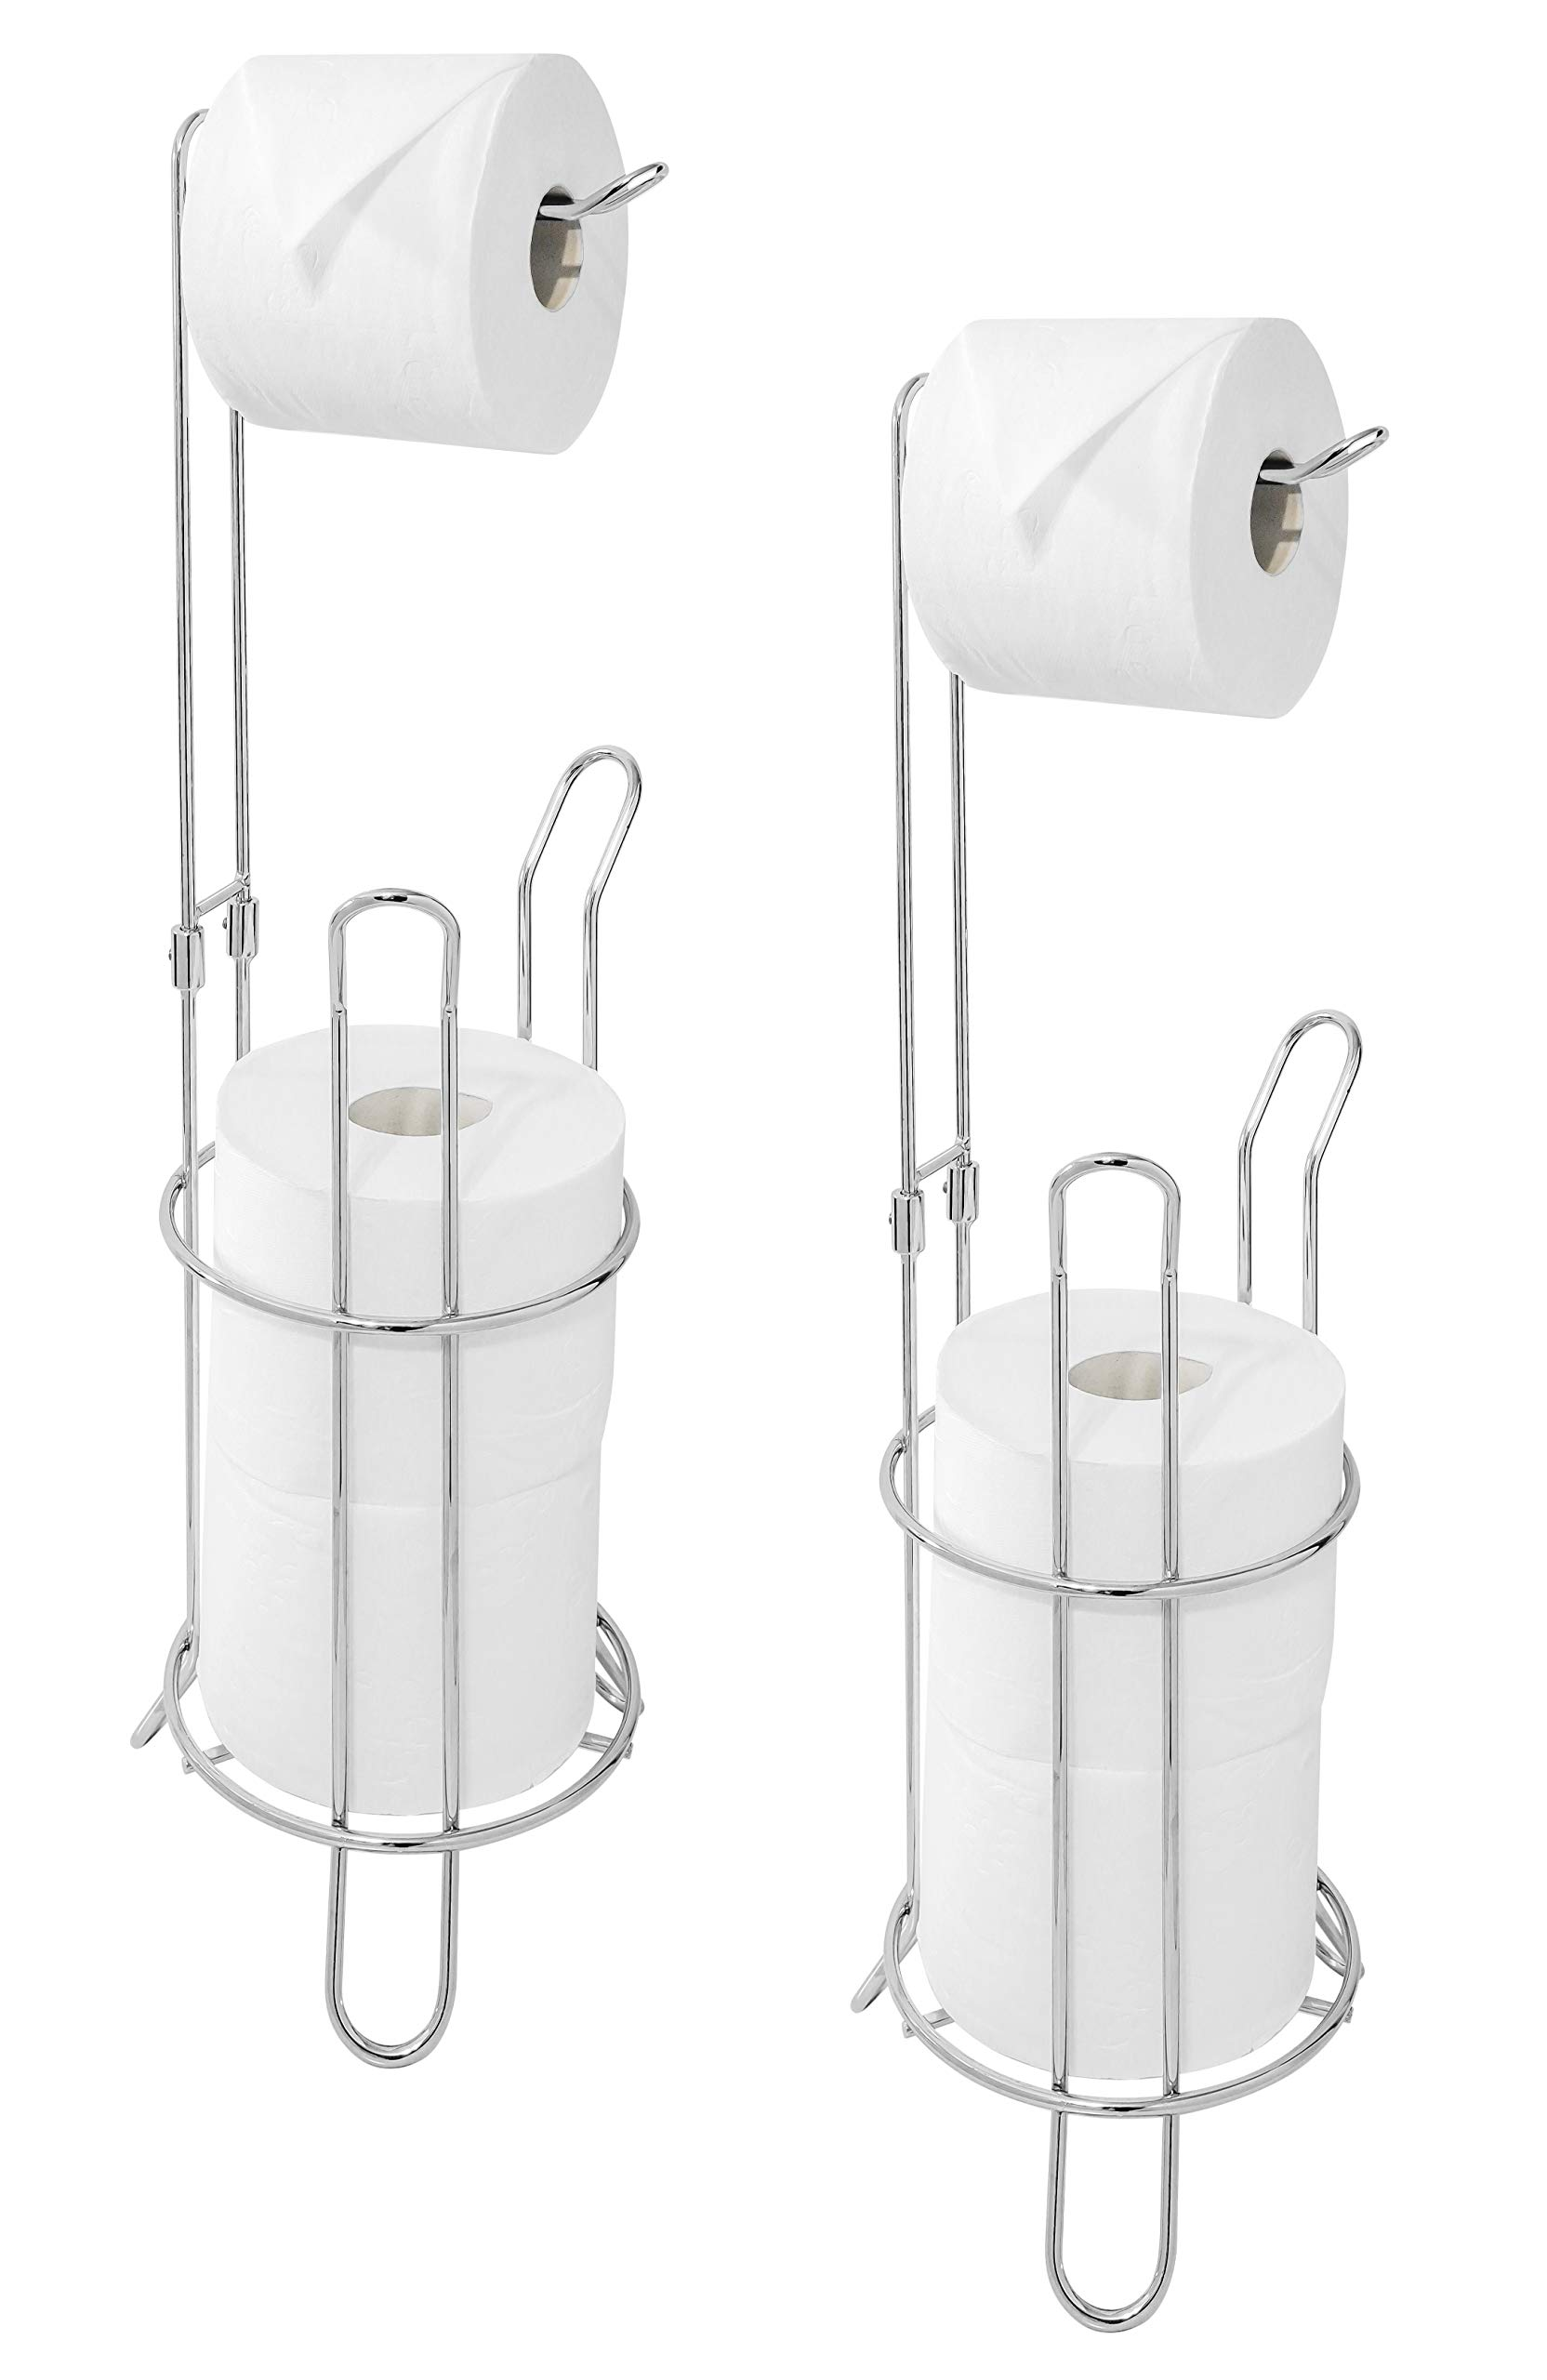 Paradis Bathroom Toilet Tissue Paper Roll Storage Holder Stand, Chrome Finish (Pack of 2)